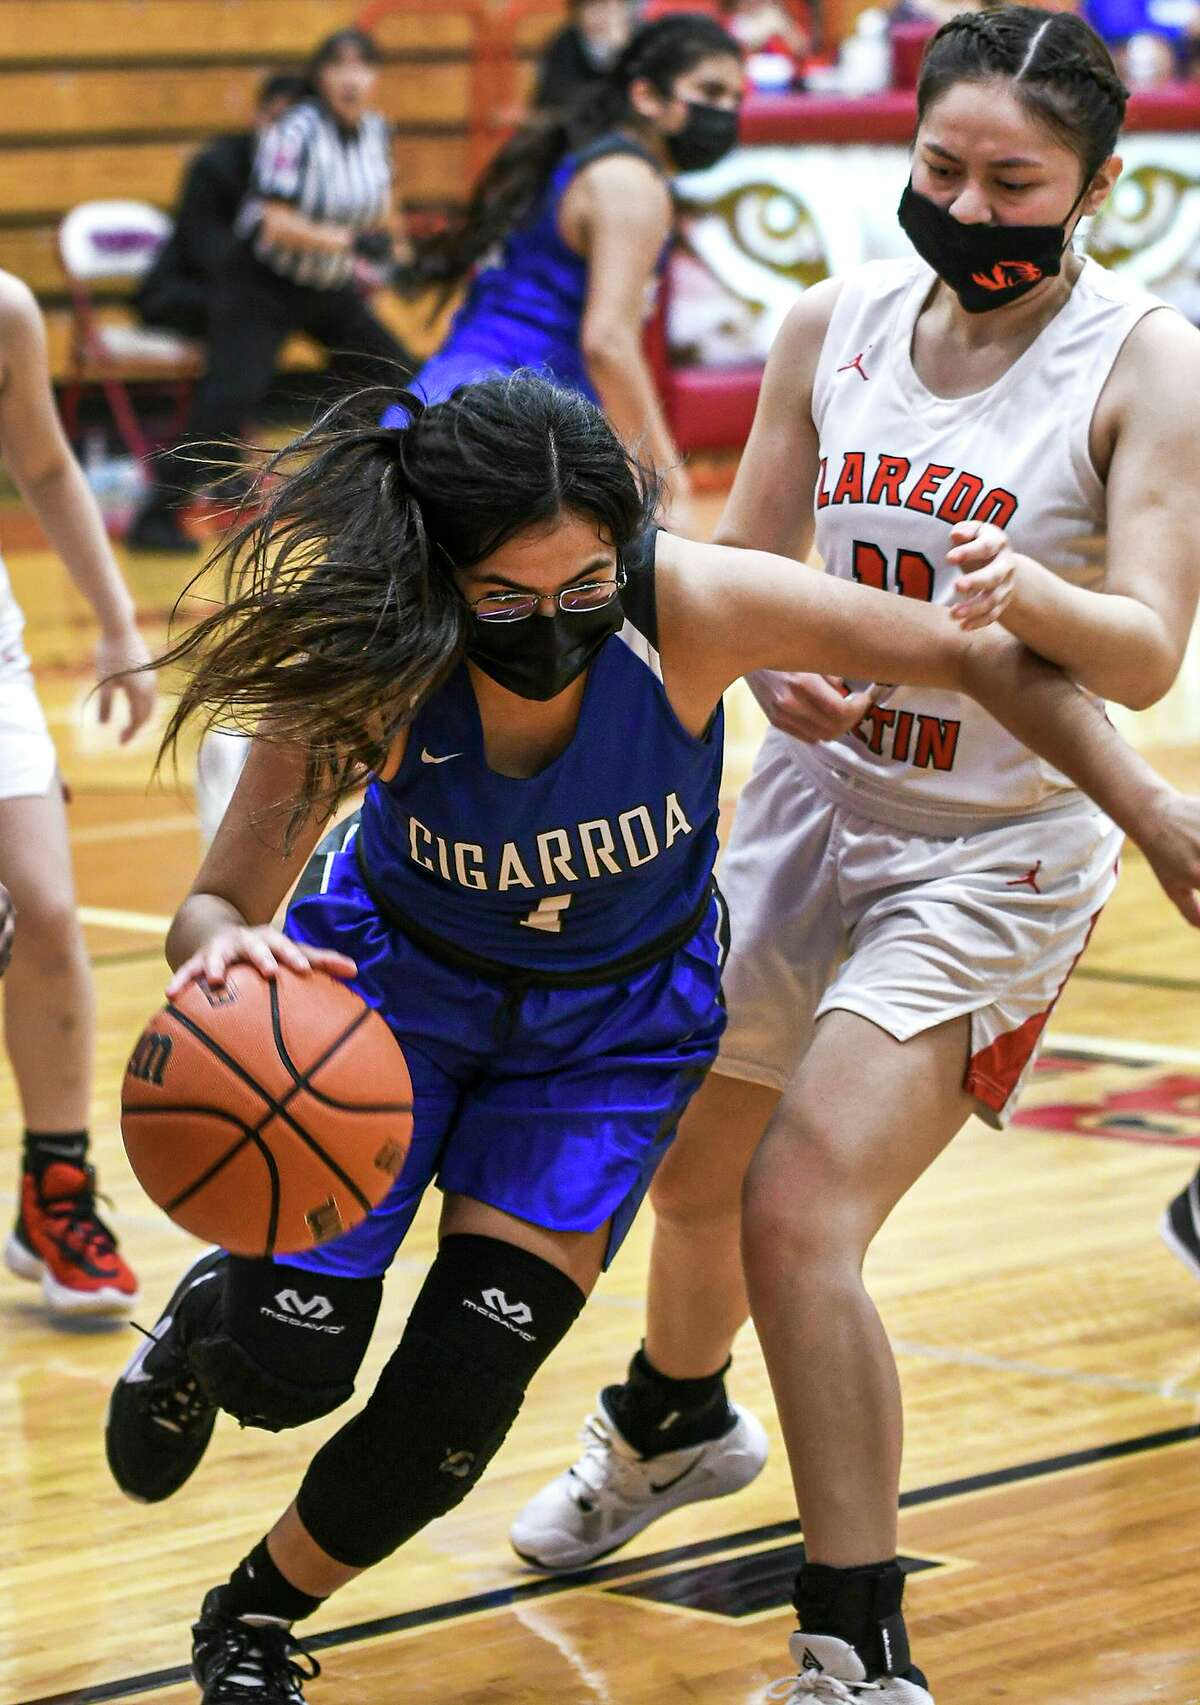 Kassandra Martinez and Cigarroa face Veterans Memorial at 5:30 p.m. Thursday at Alice High School, and Daina Garcia and Martin play at 6:30 p.m. at Kingsville High School against Victoria East.